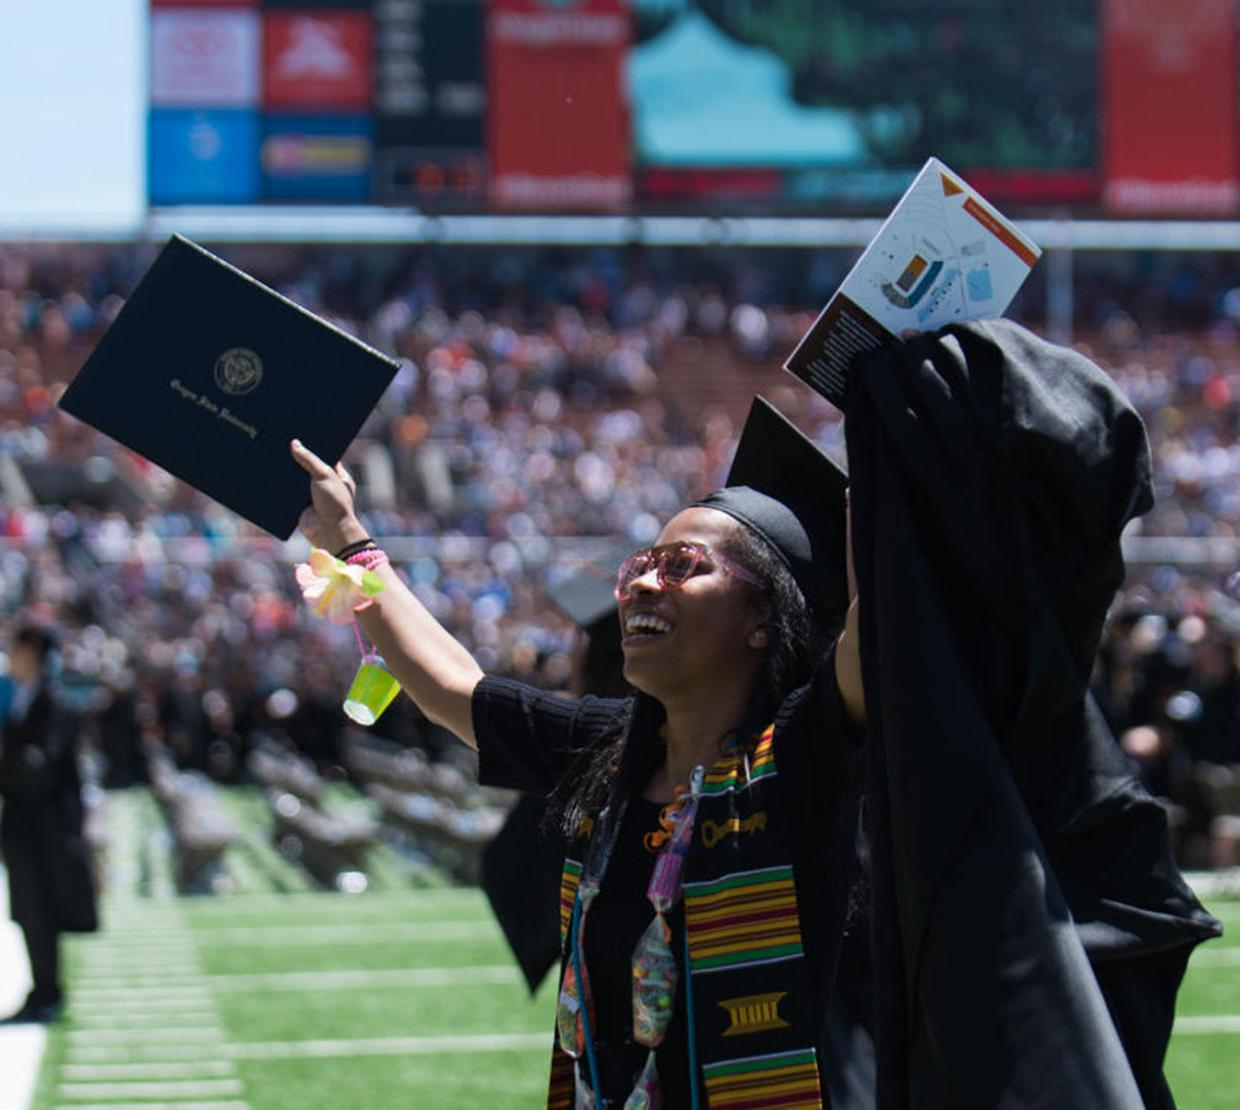 student holding up degree during graduation ceremony